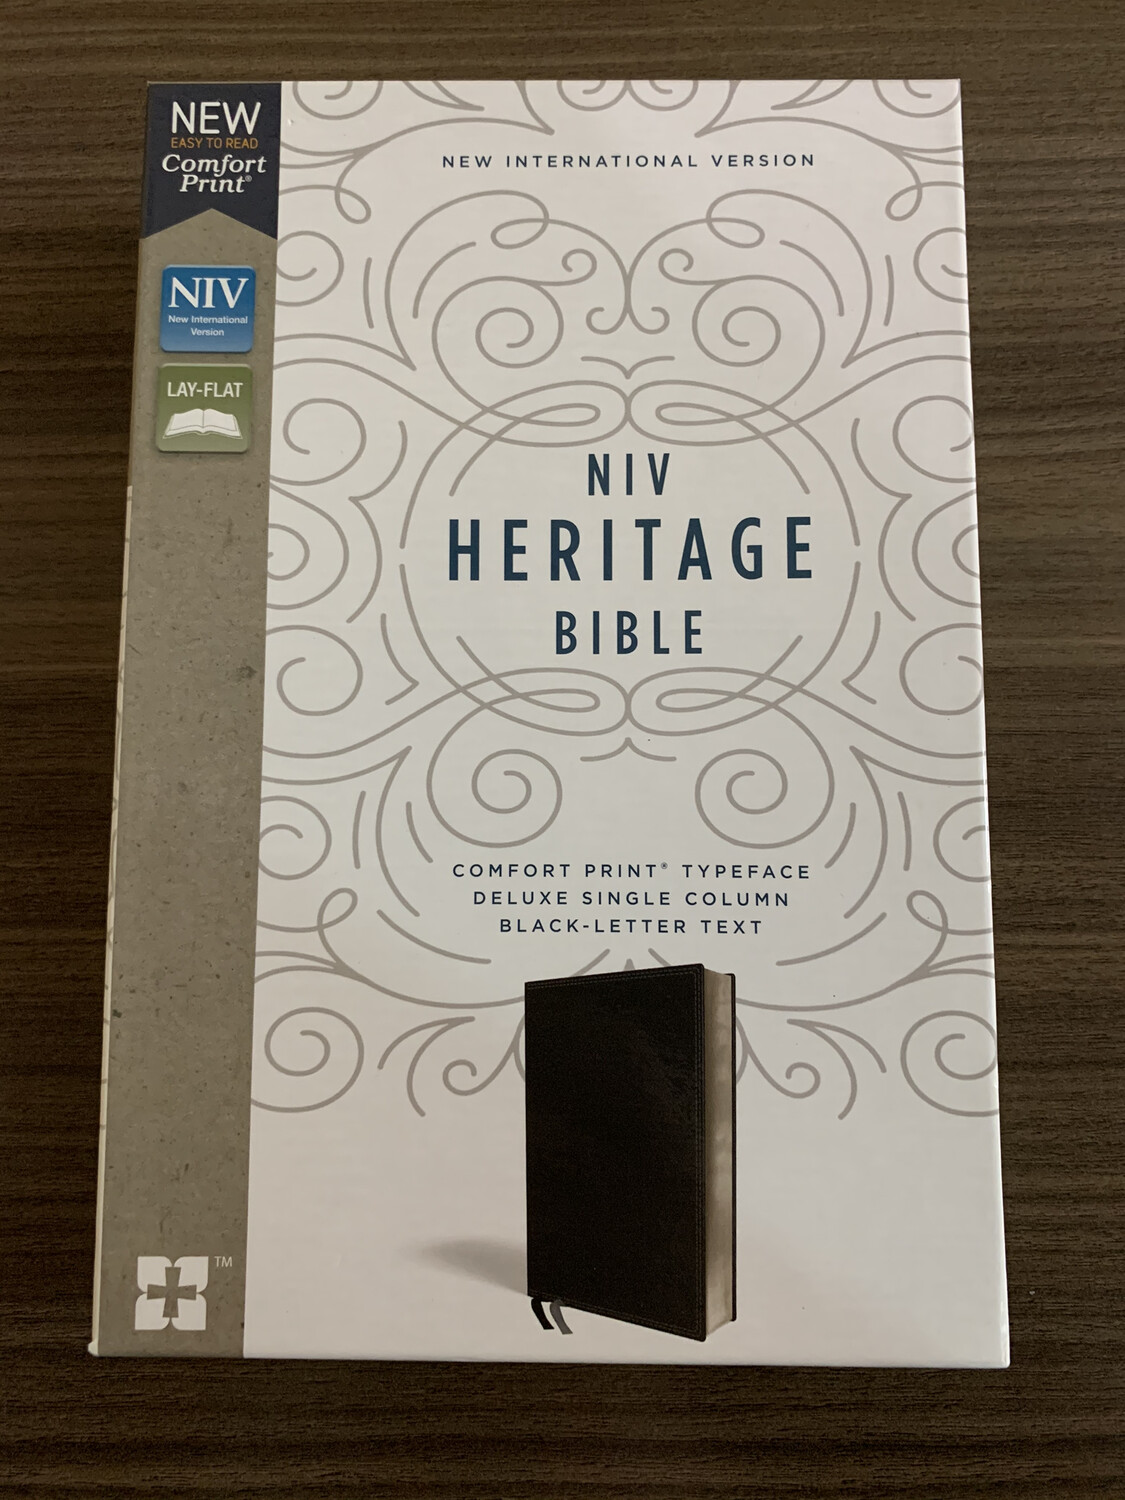 NIV Heritage Bible, Black